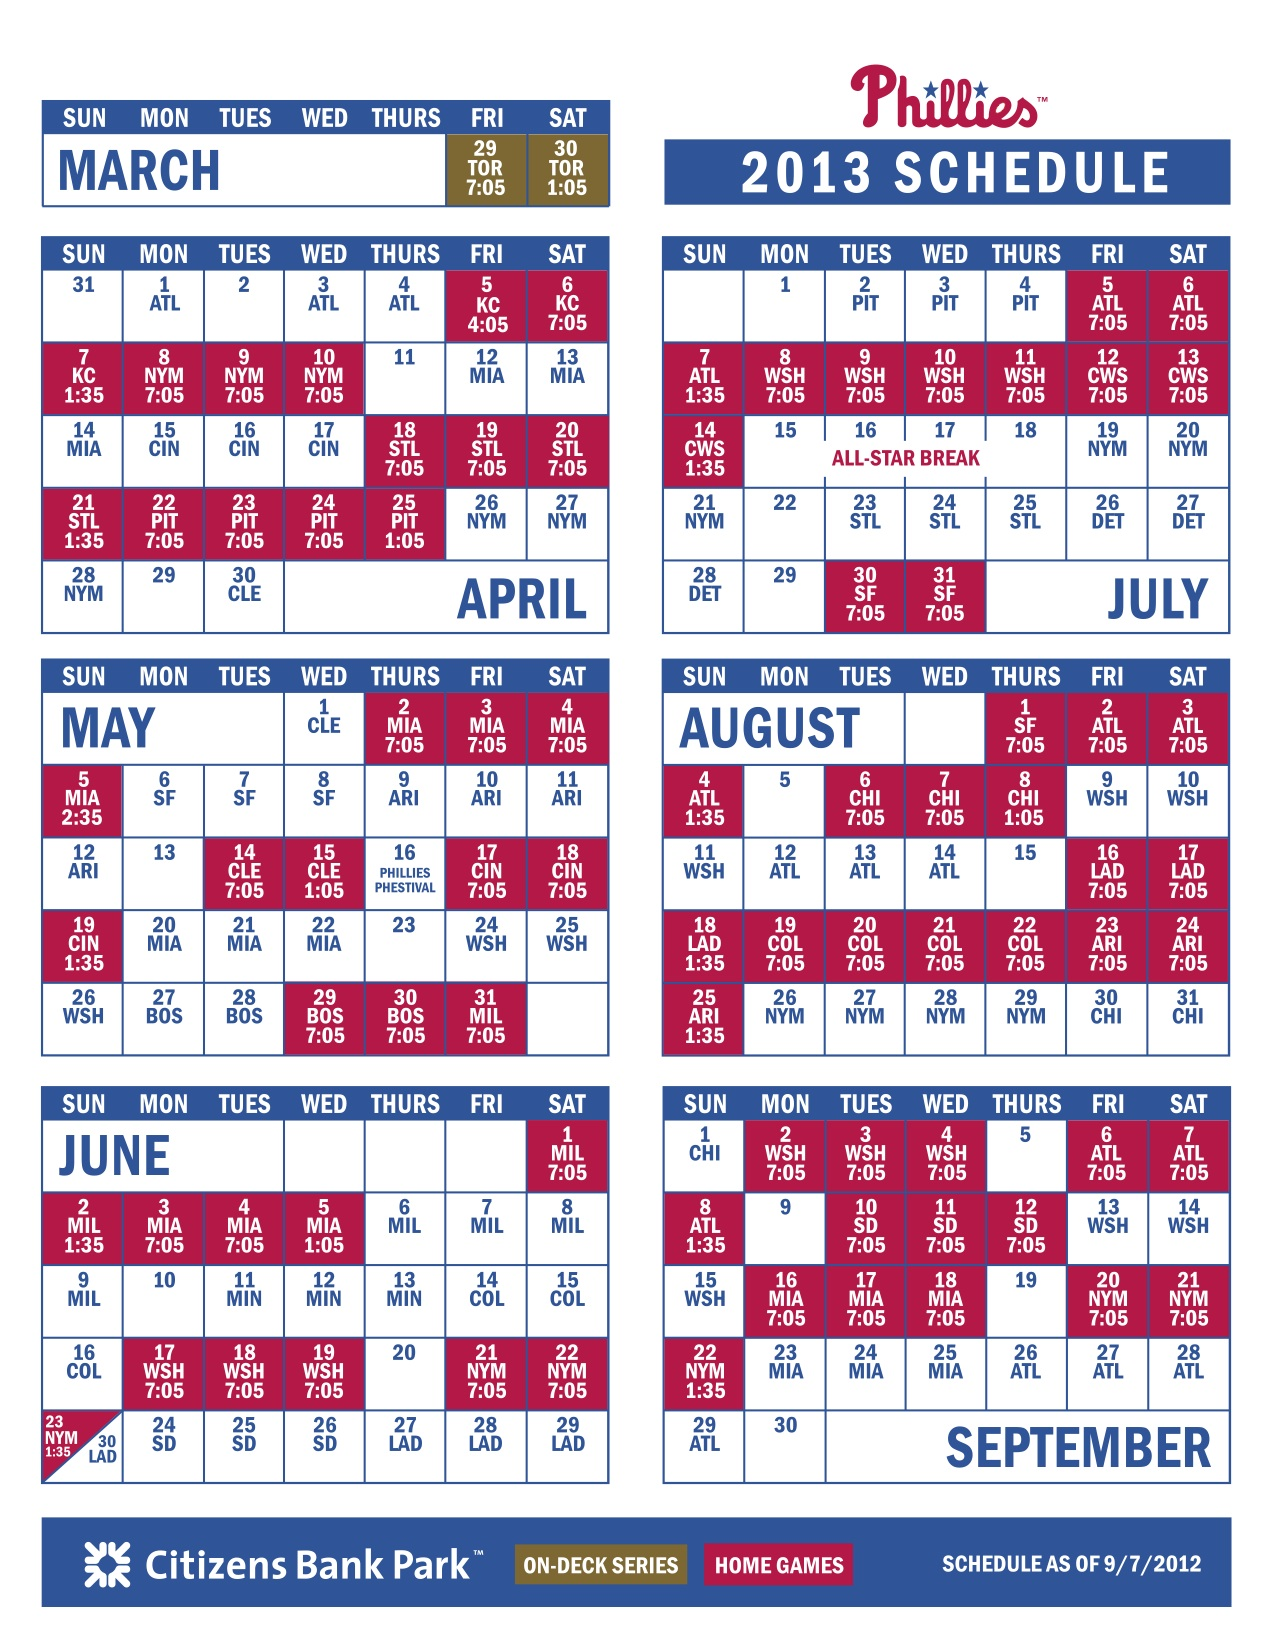 photograph regarding Phillies Schedule Printable named Phillies Launch 2013 Timetable CBS Philly